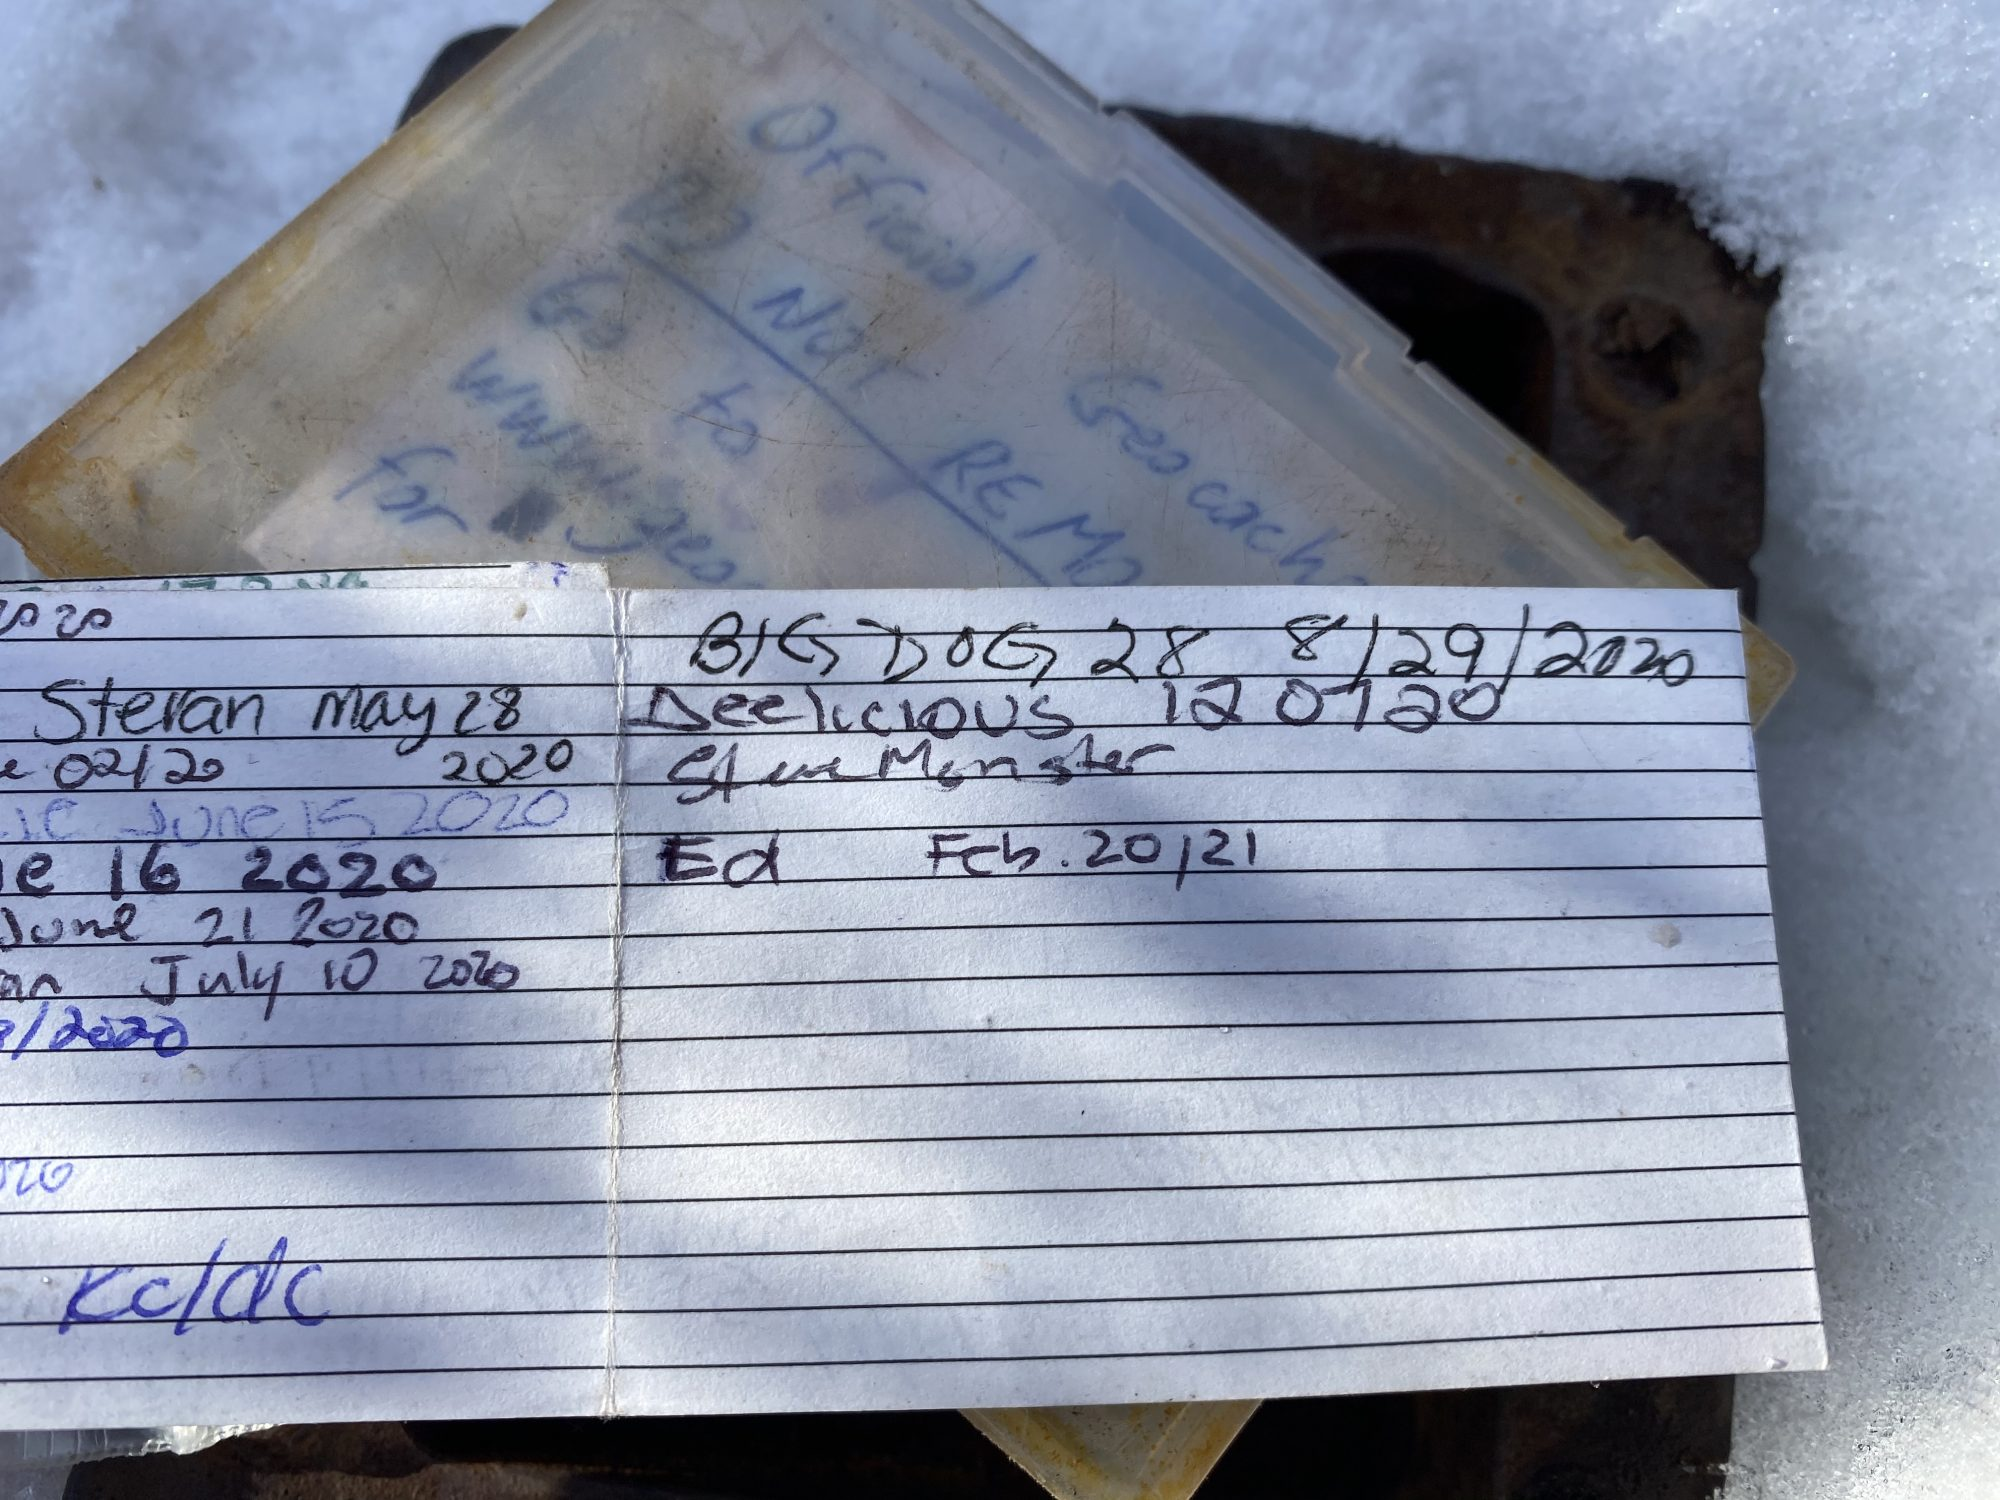 The contents of the imposter metal box with geocache log.